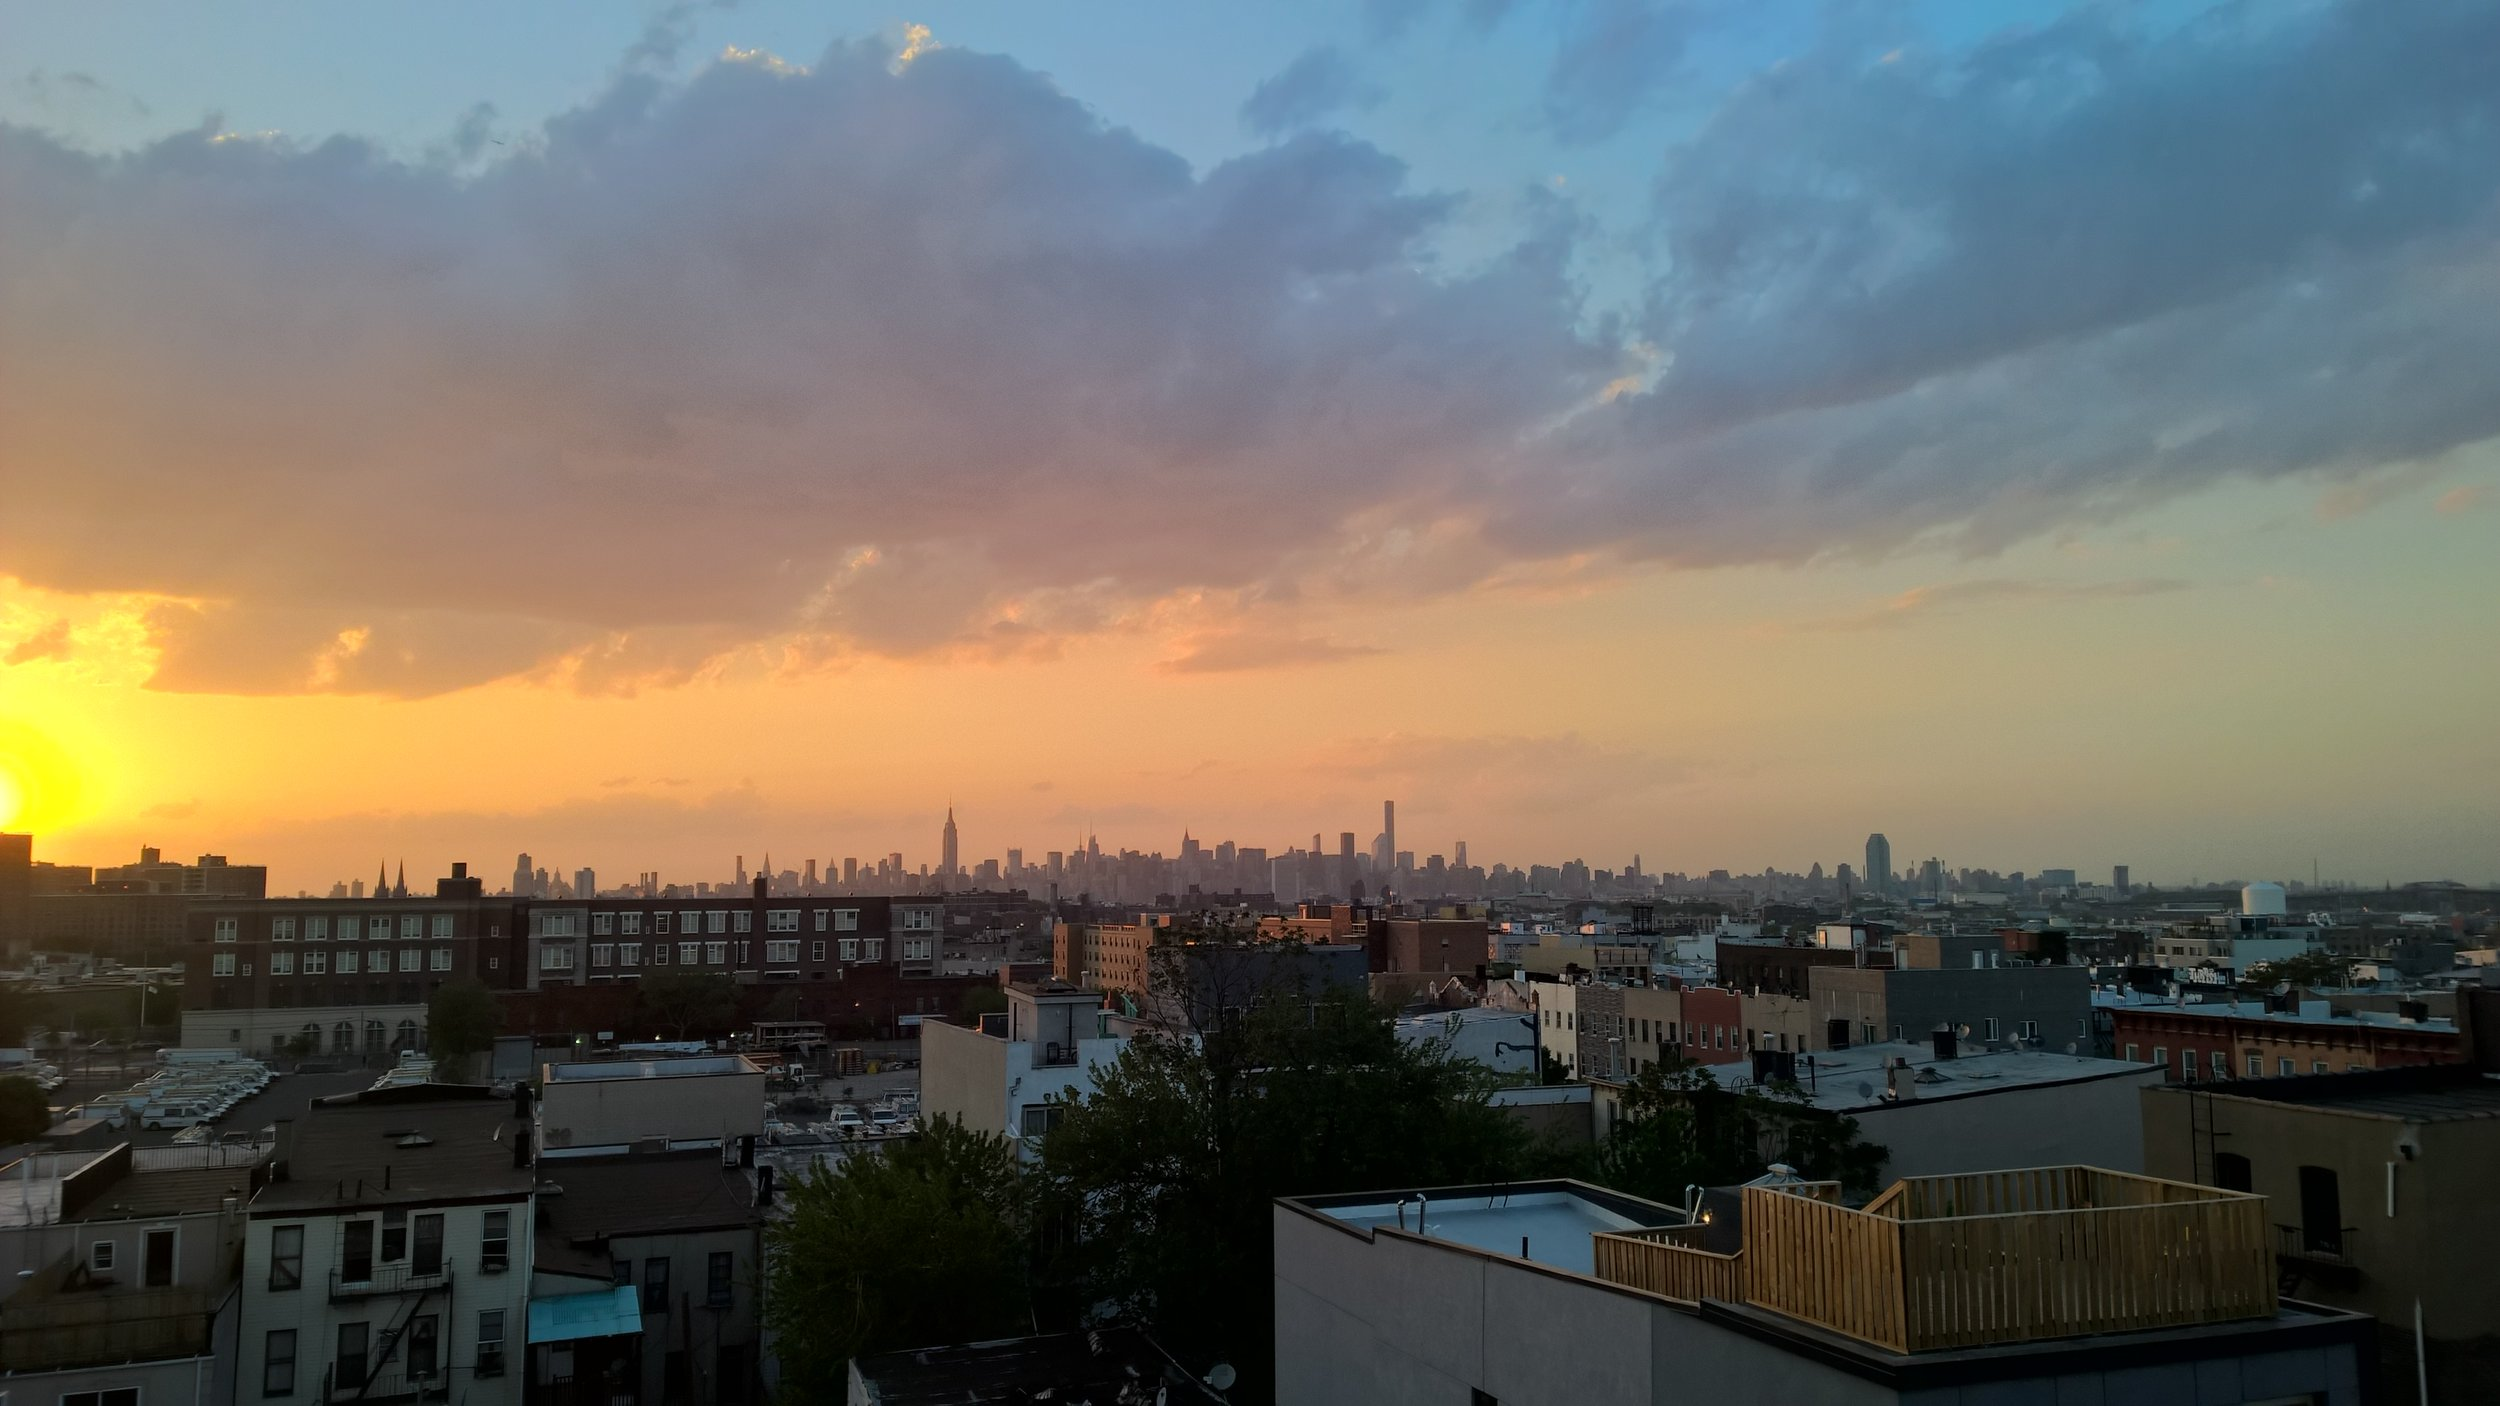 new york city at night - views from penthouse roof deck during sunset